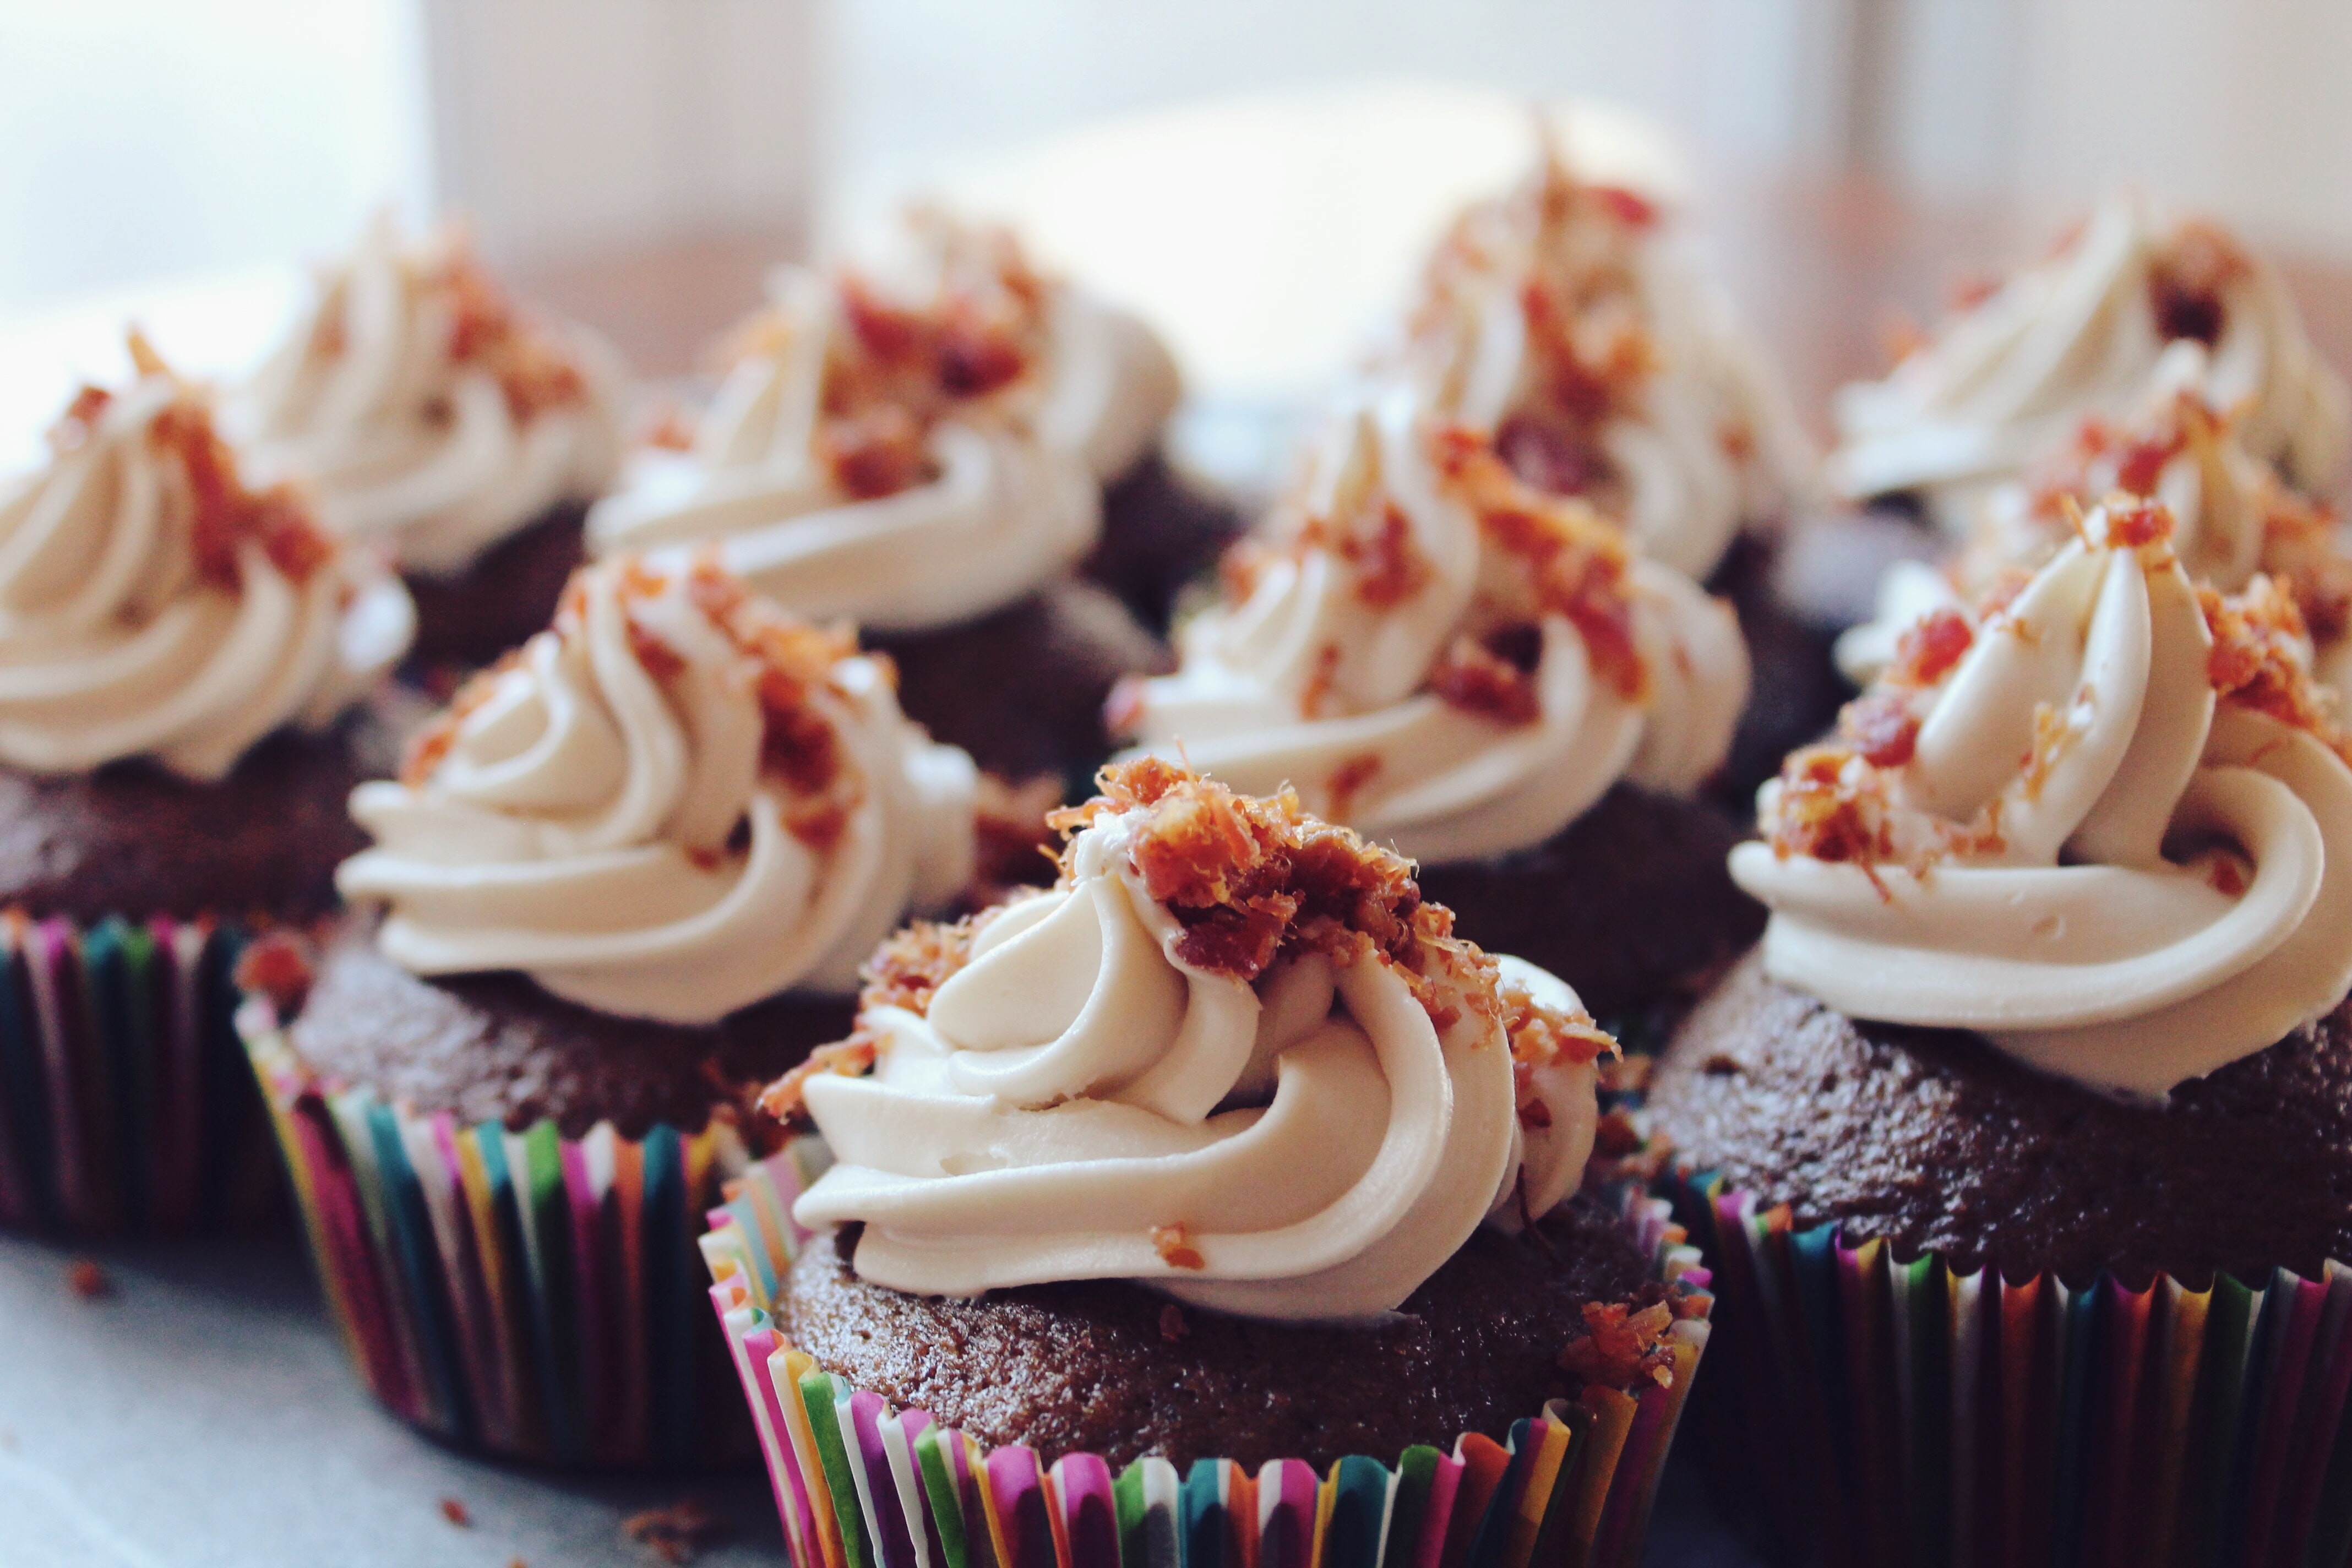 close-up photography of cupcakes